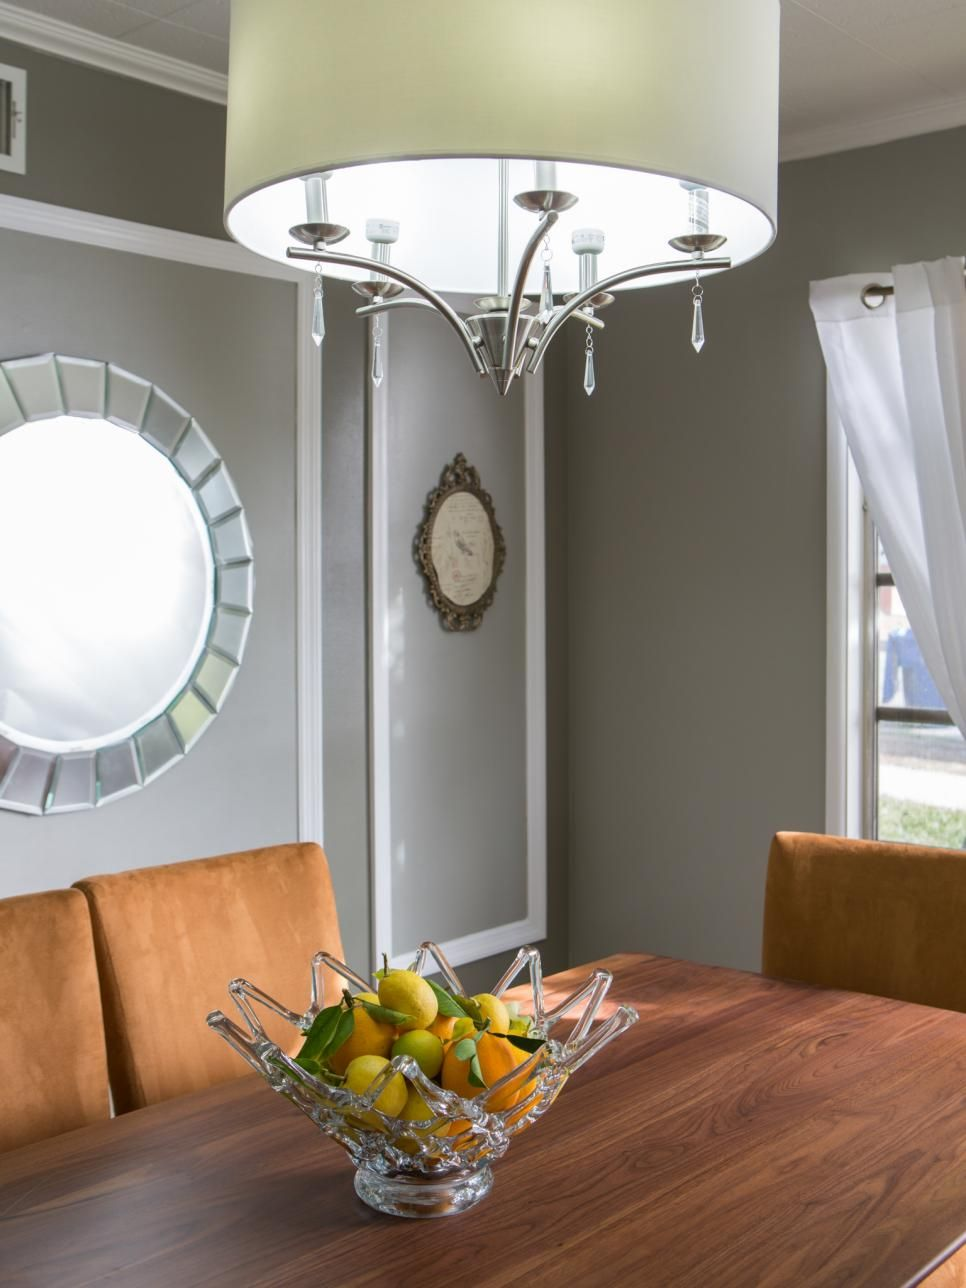 Contemporary Chandeliers For Dining Room Inspiration Gray Dining Room With Contemporary Chandelier  Decor  Pinterest Design Ideas